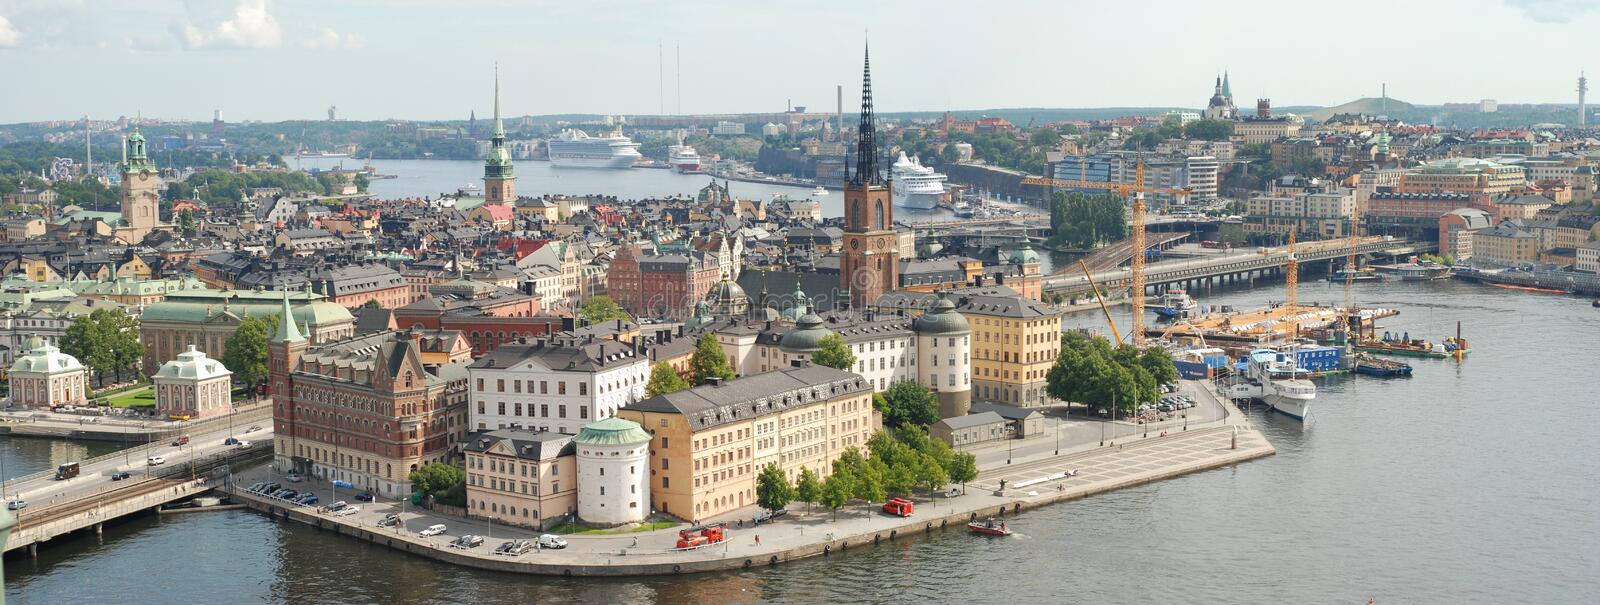 Stockholm Old Town in Sweden stock photography